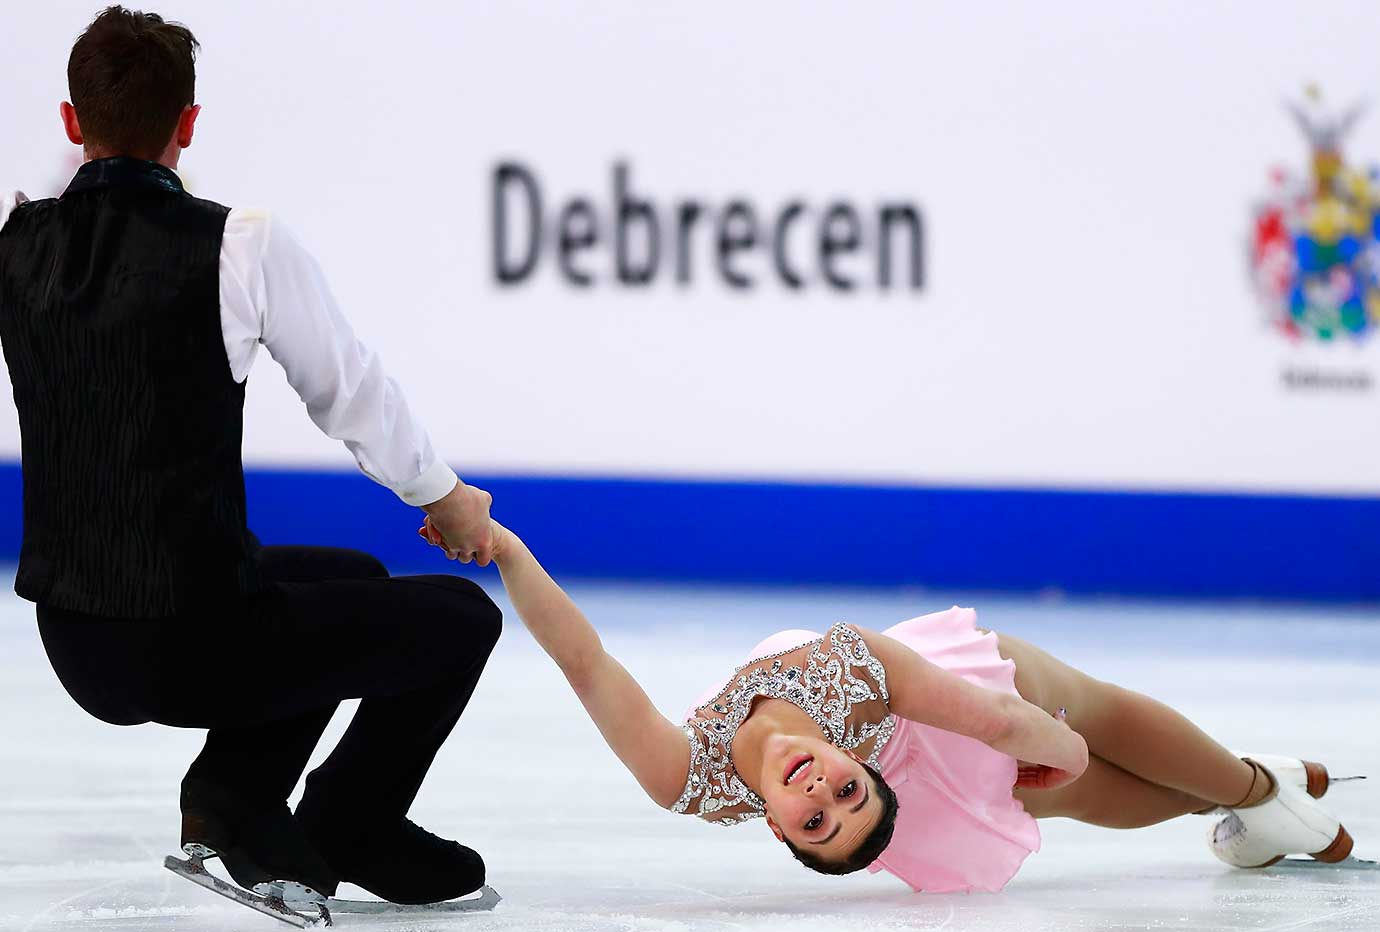 Lindsay Weinstein and Jacob Simon from the U.S. skate during the ISU World Junior Figure Skating Championships in Debrecen, Hungary.